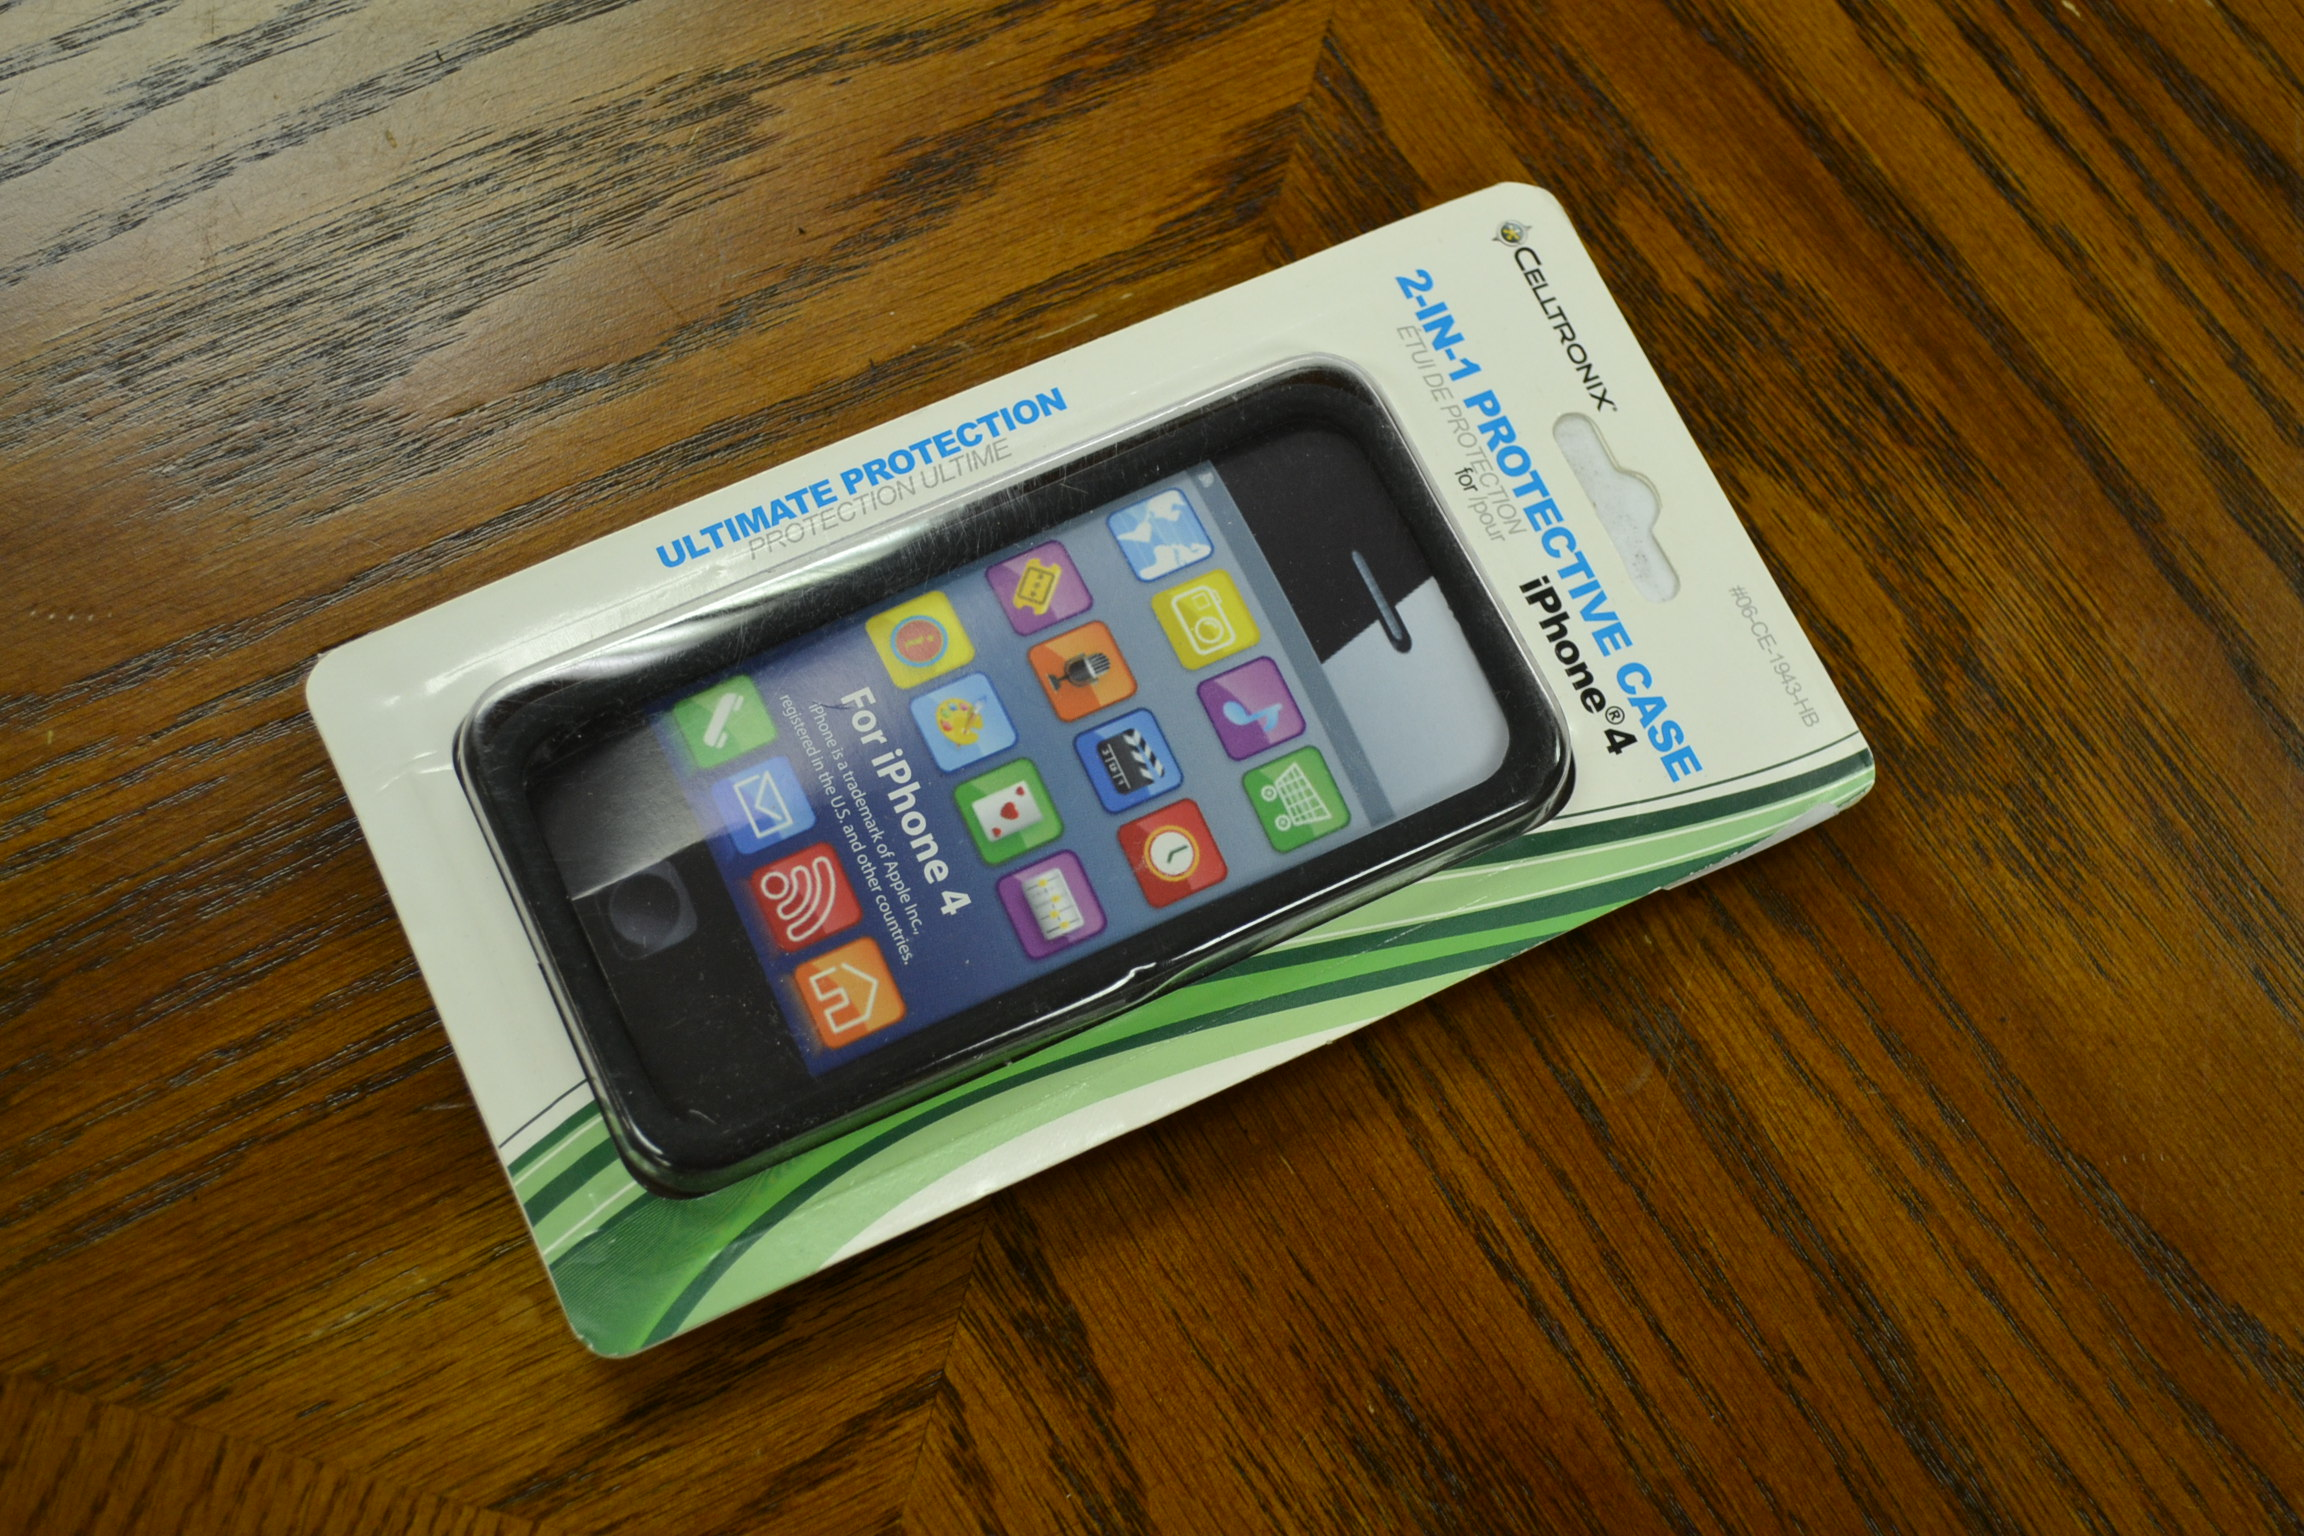 Hoffco Distribution Protective Case For iPhone 4 06-CE-1943-HB